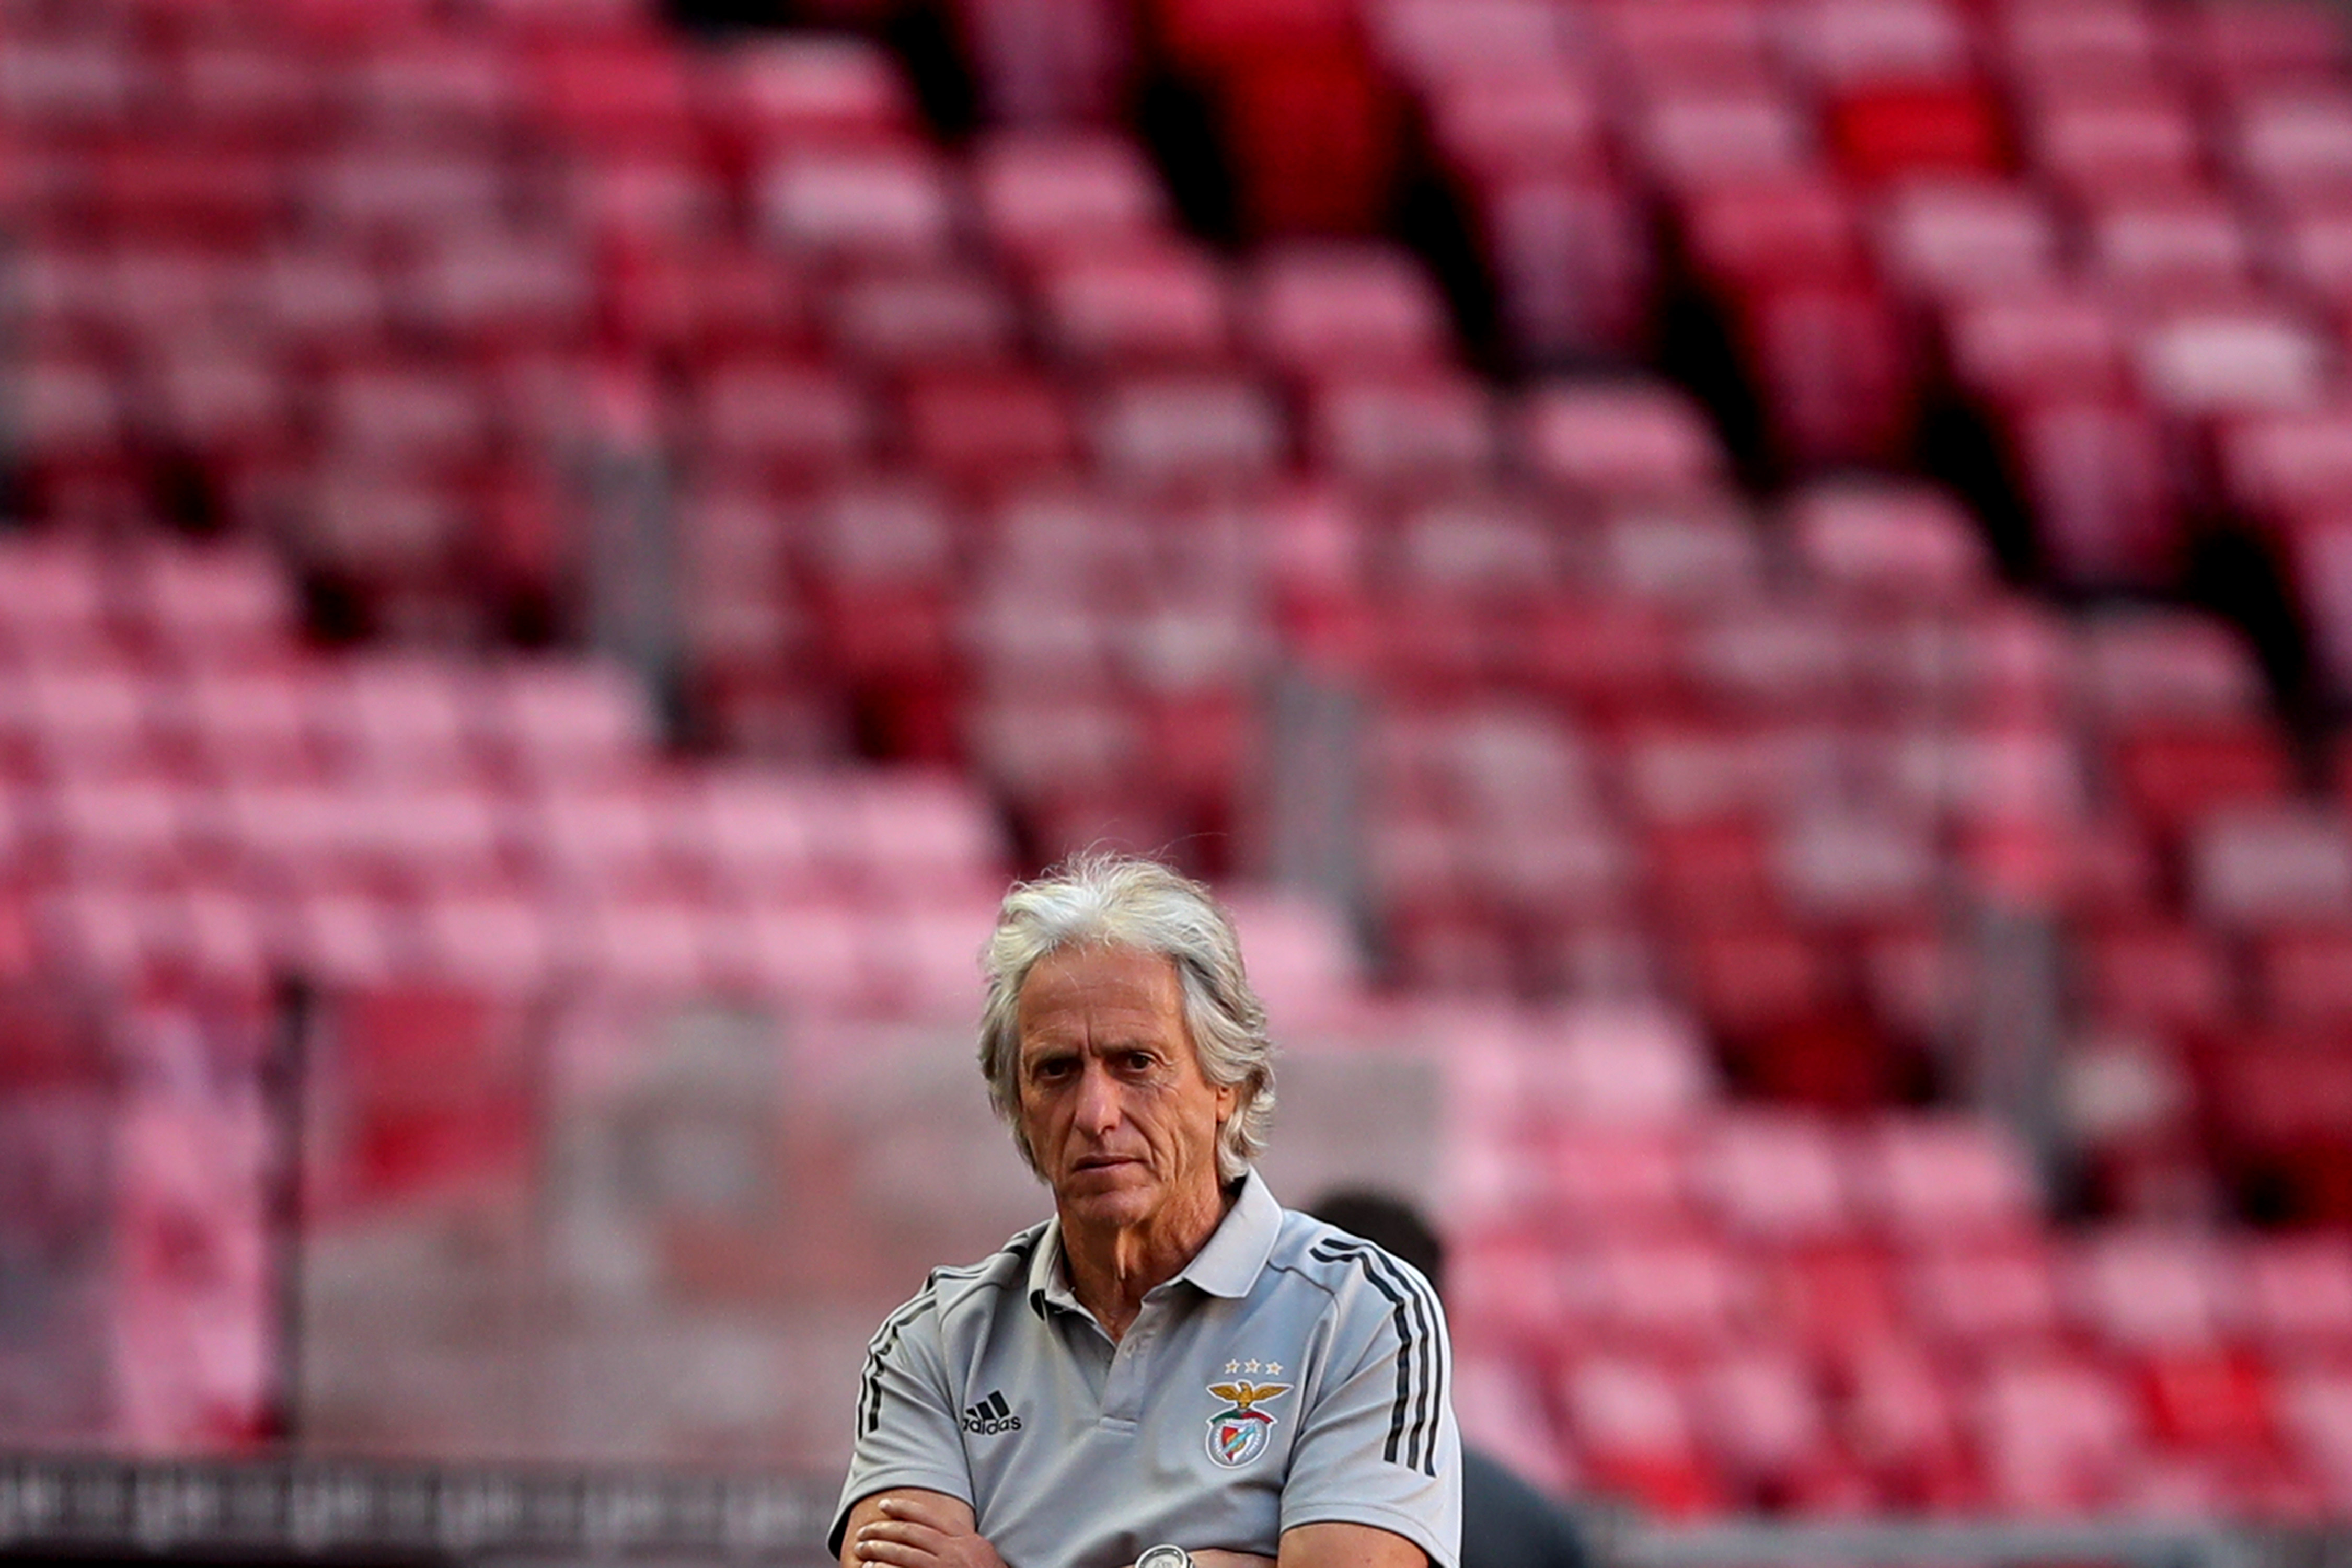 Benfica's head coach Jorge Jesus looks on during the pre season friendly football match between SL Benfica and AFC Bournemouth at the Luz stadium in Lisbon, Portugal on August 30, 2020. (Photo by Pedro Fiúza/NurPhoto via Getty Images)